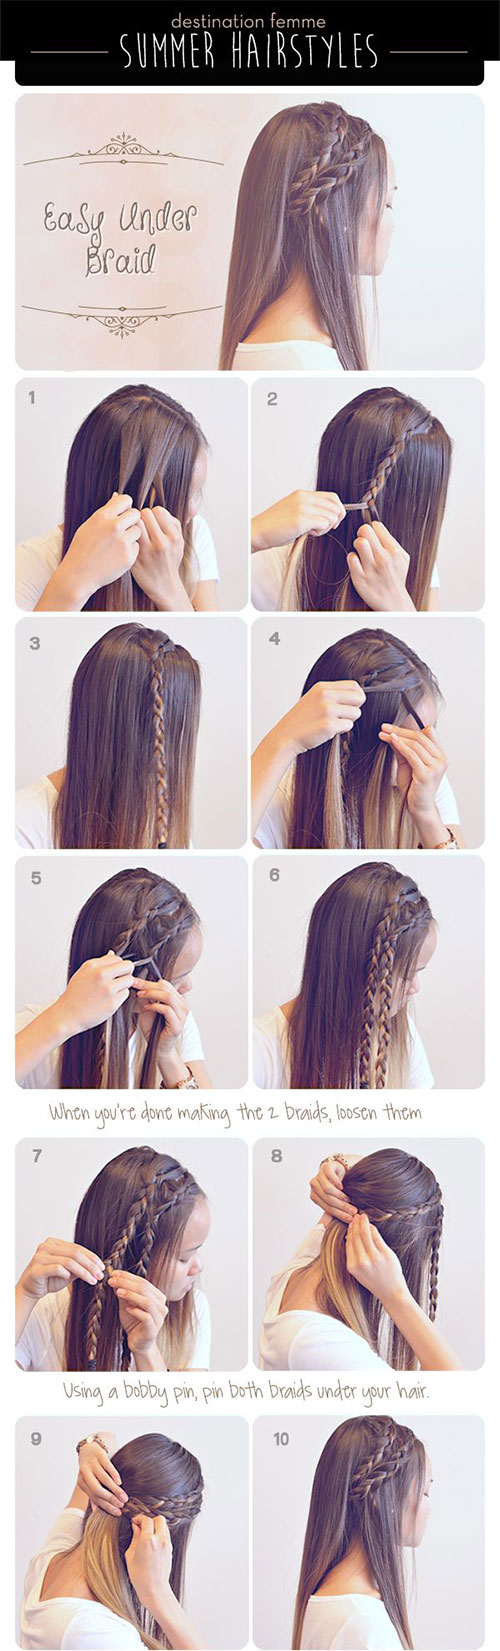 15-Step-By-Step-Summer-Hairstyle-Tutorials-For-Beginners-Learners-2015-6